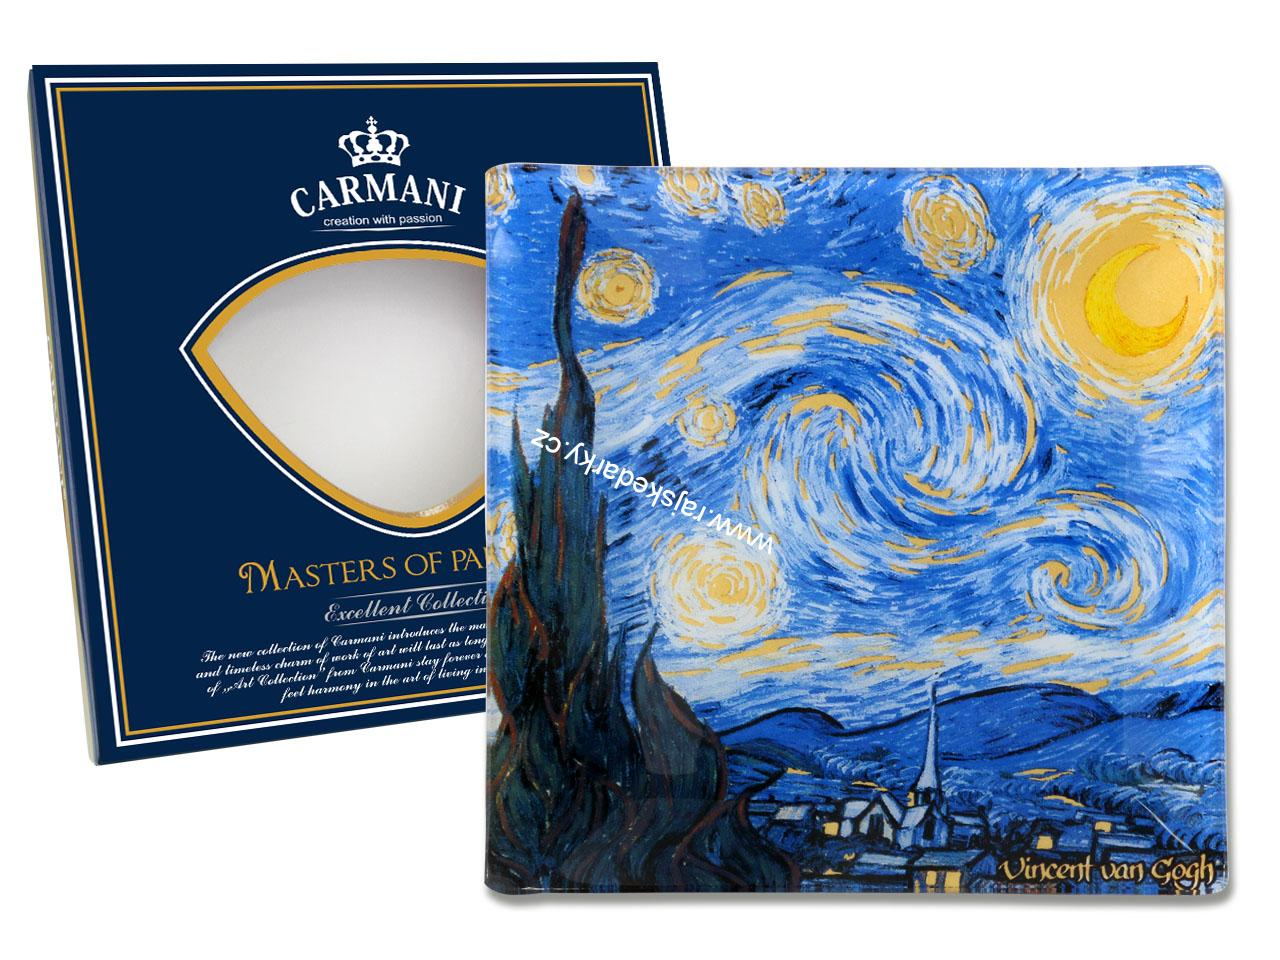 Skleněný tác 13x13 cmVincent van GOGH The Starry night, CARMANI